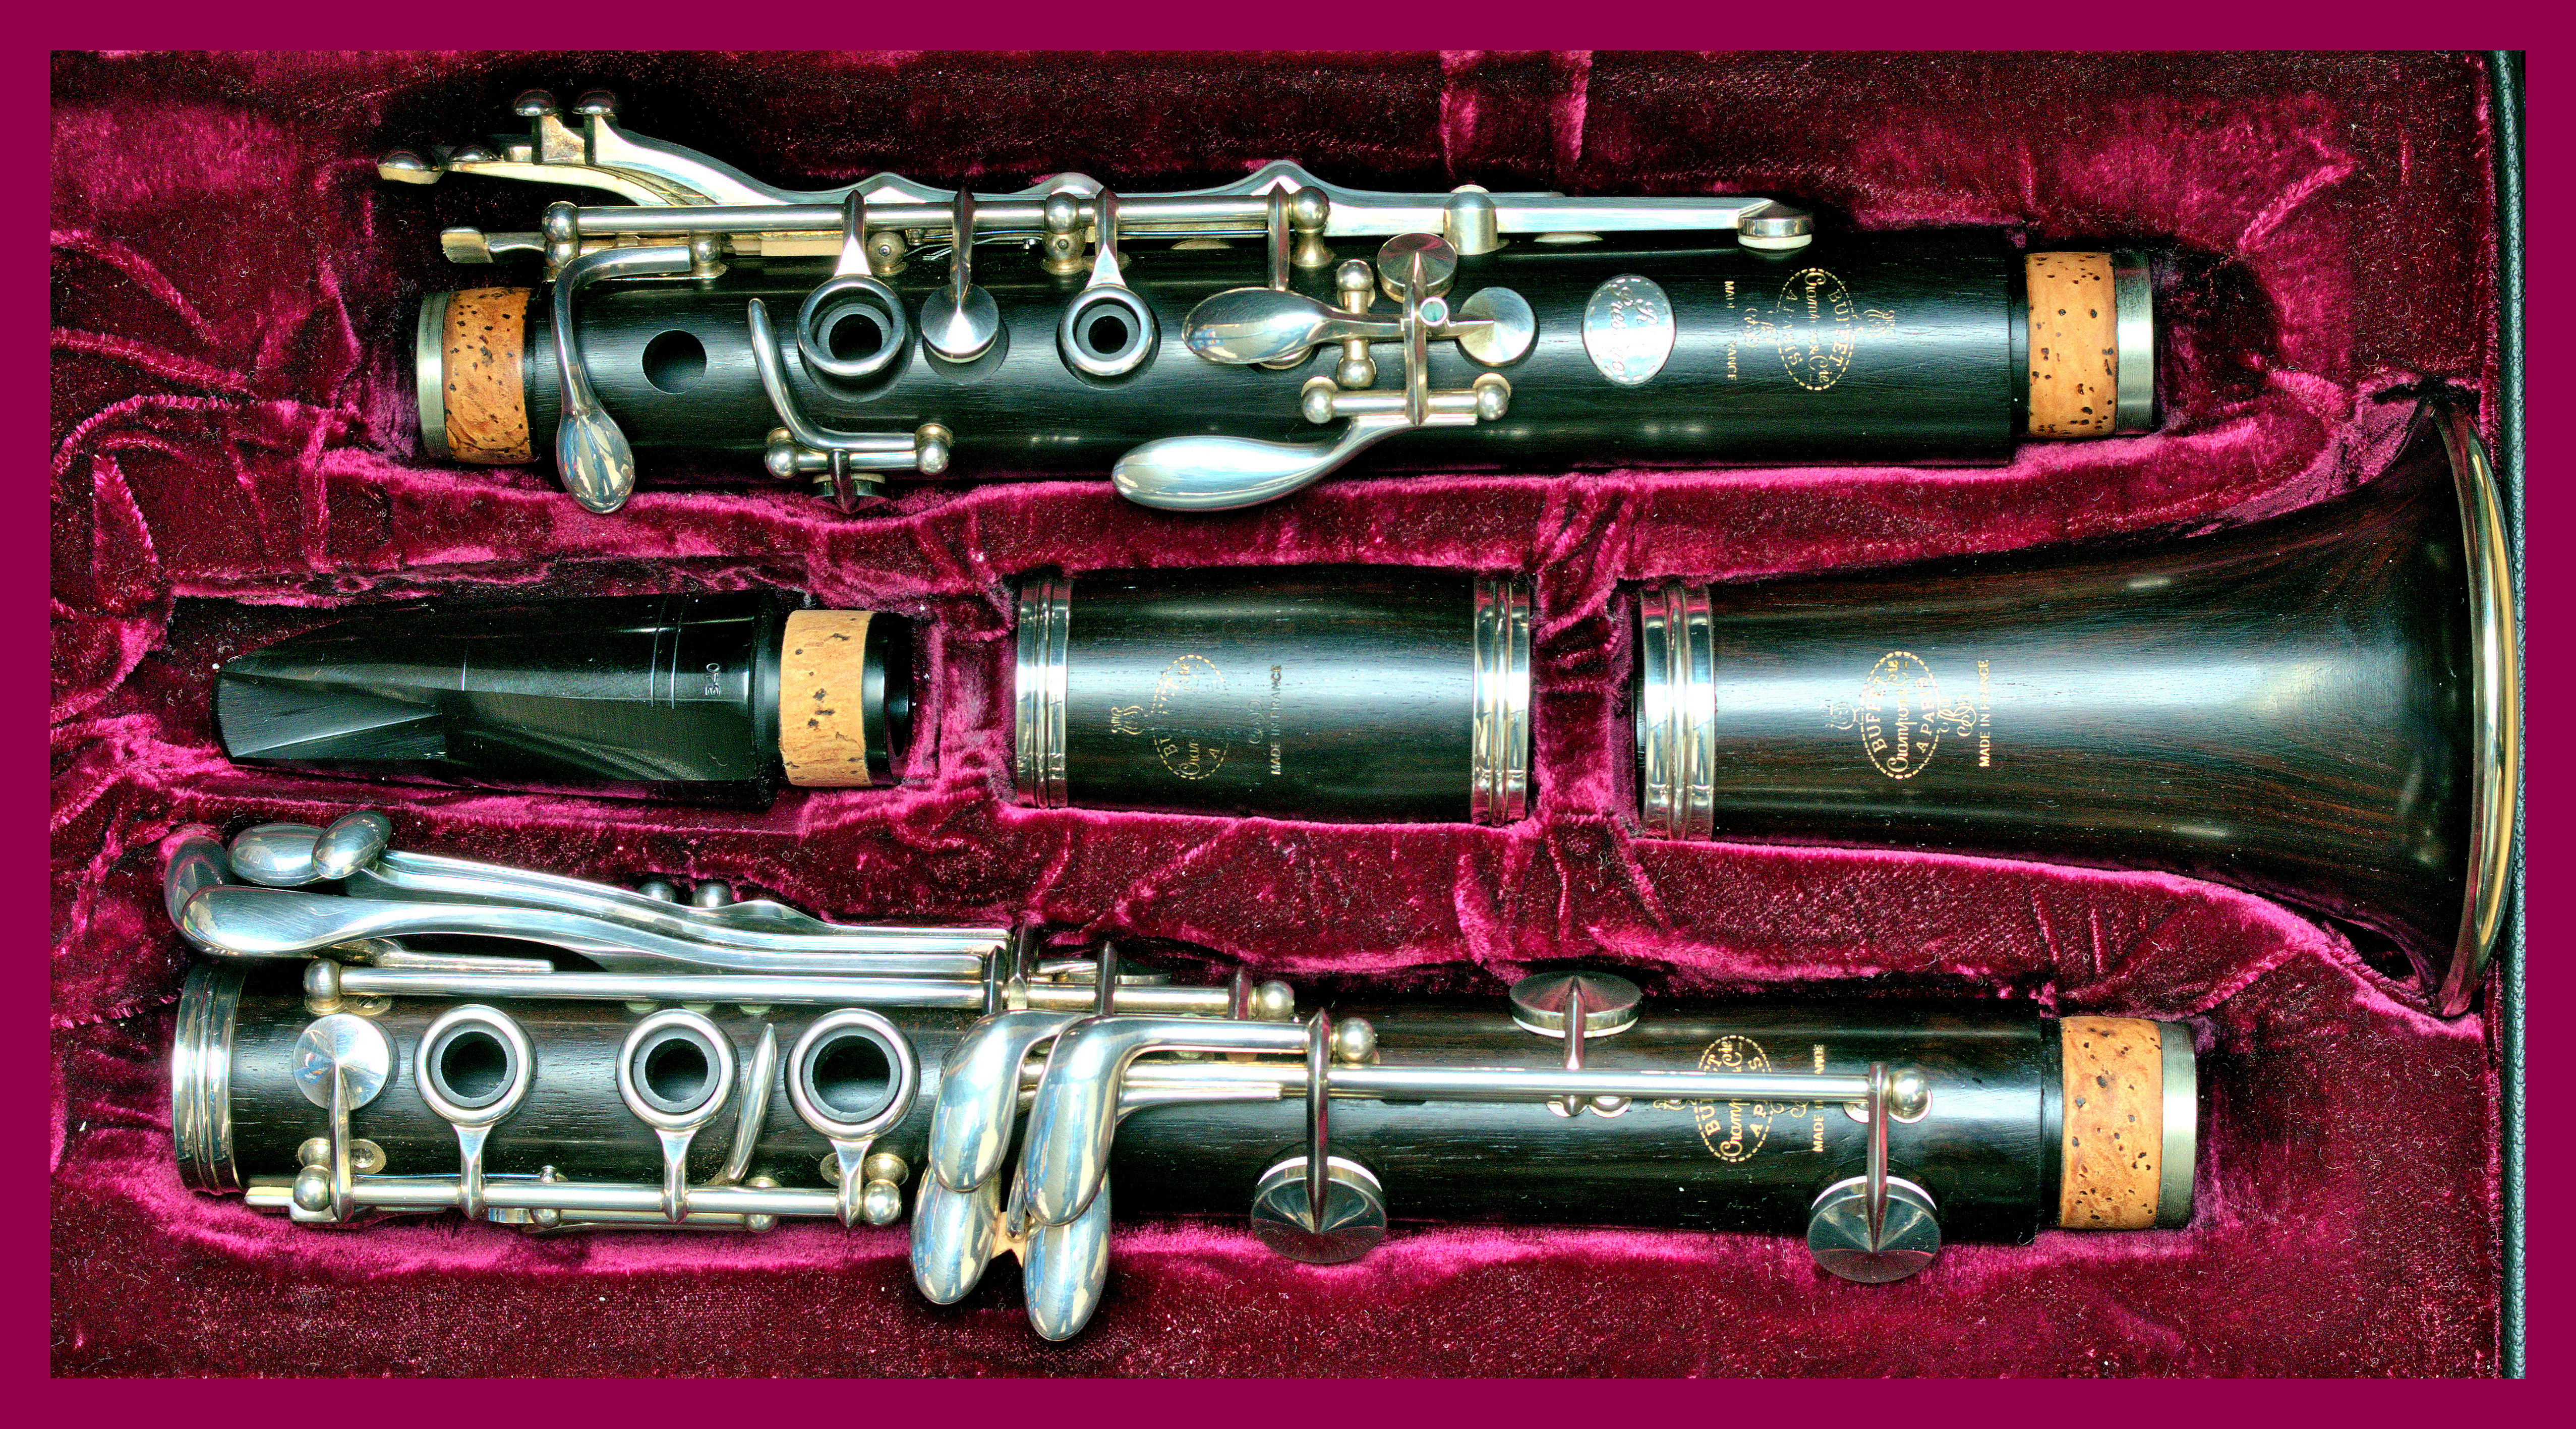 where is the serial number on a clarinet